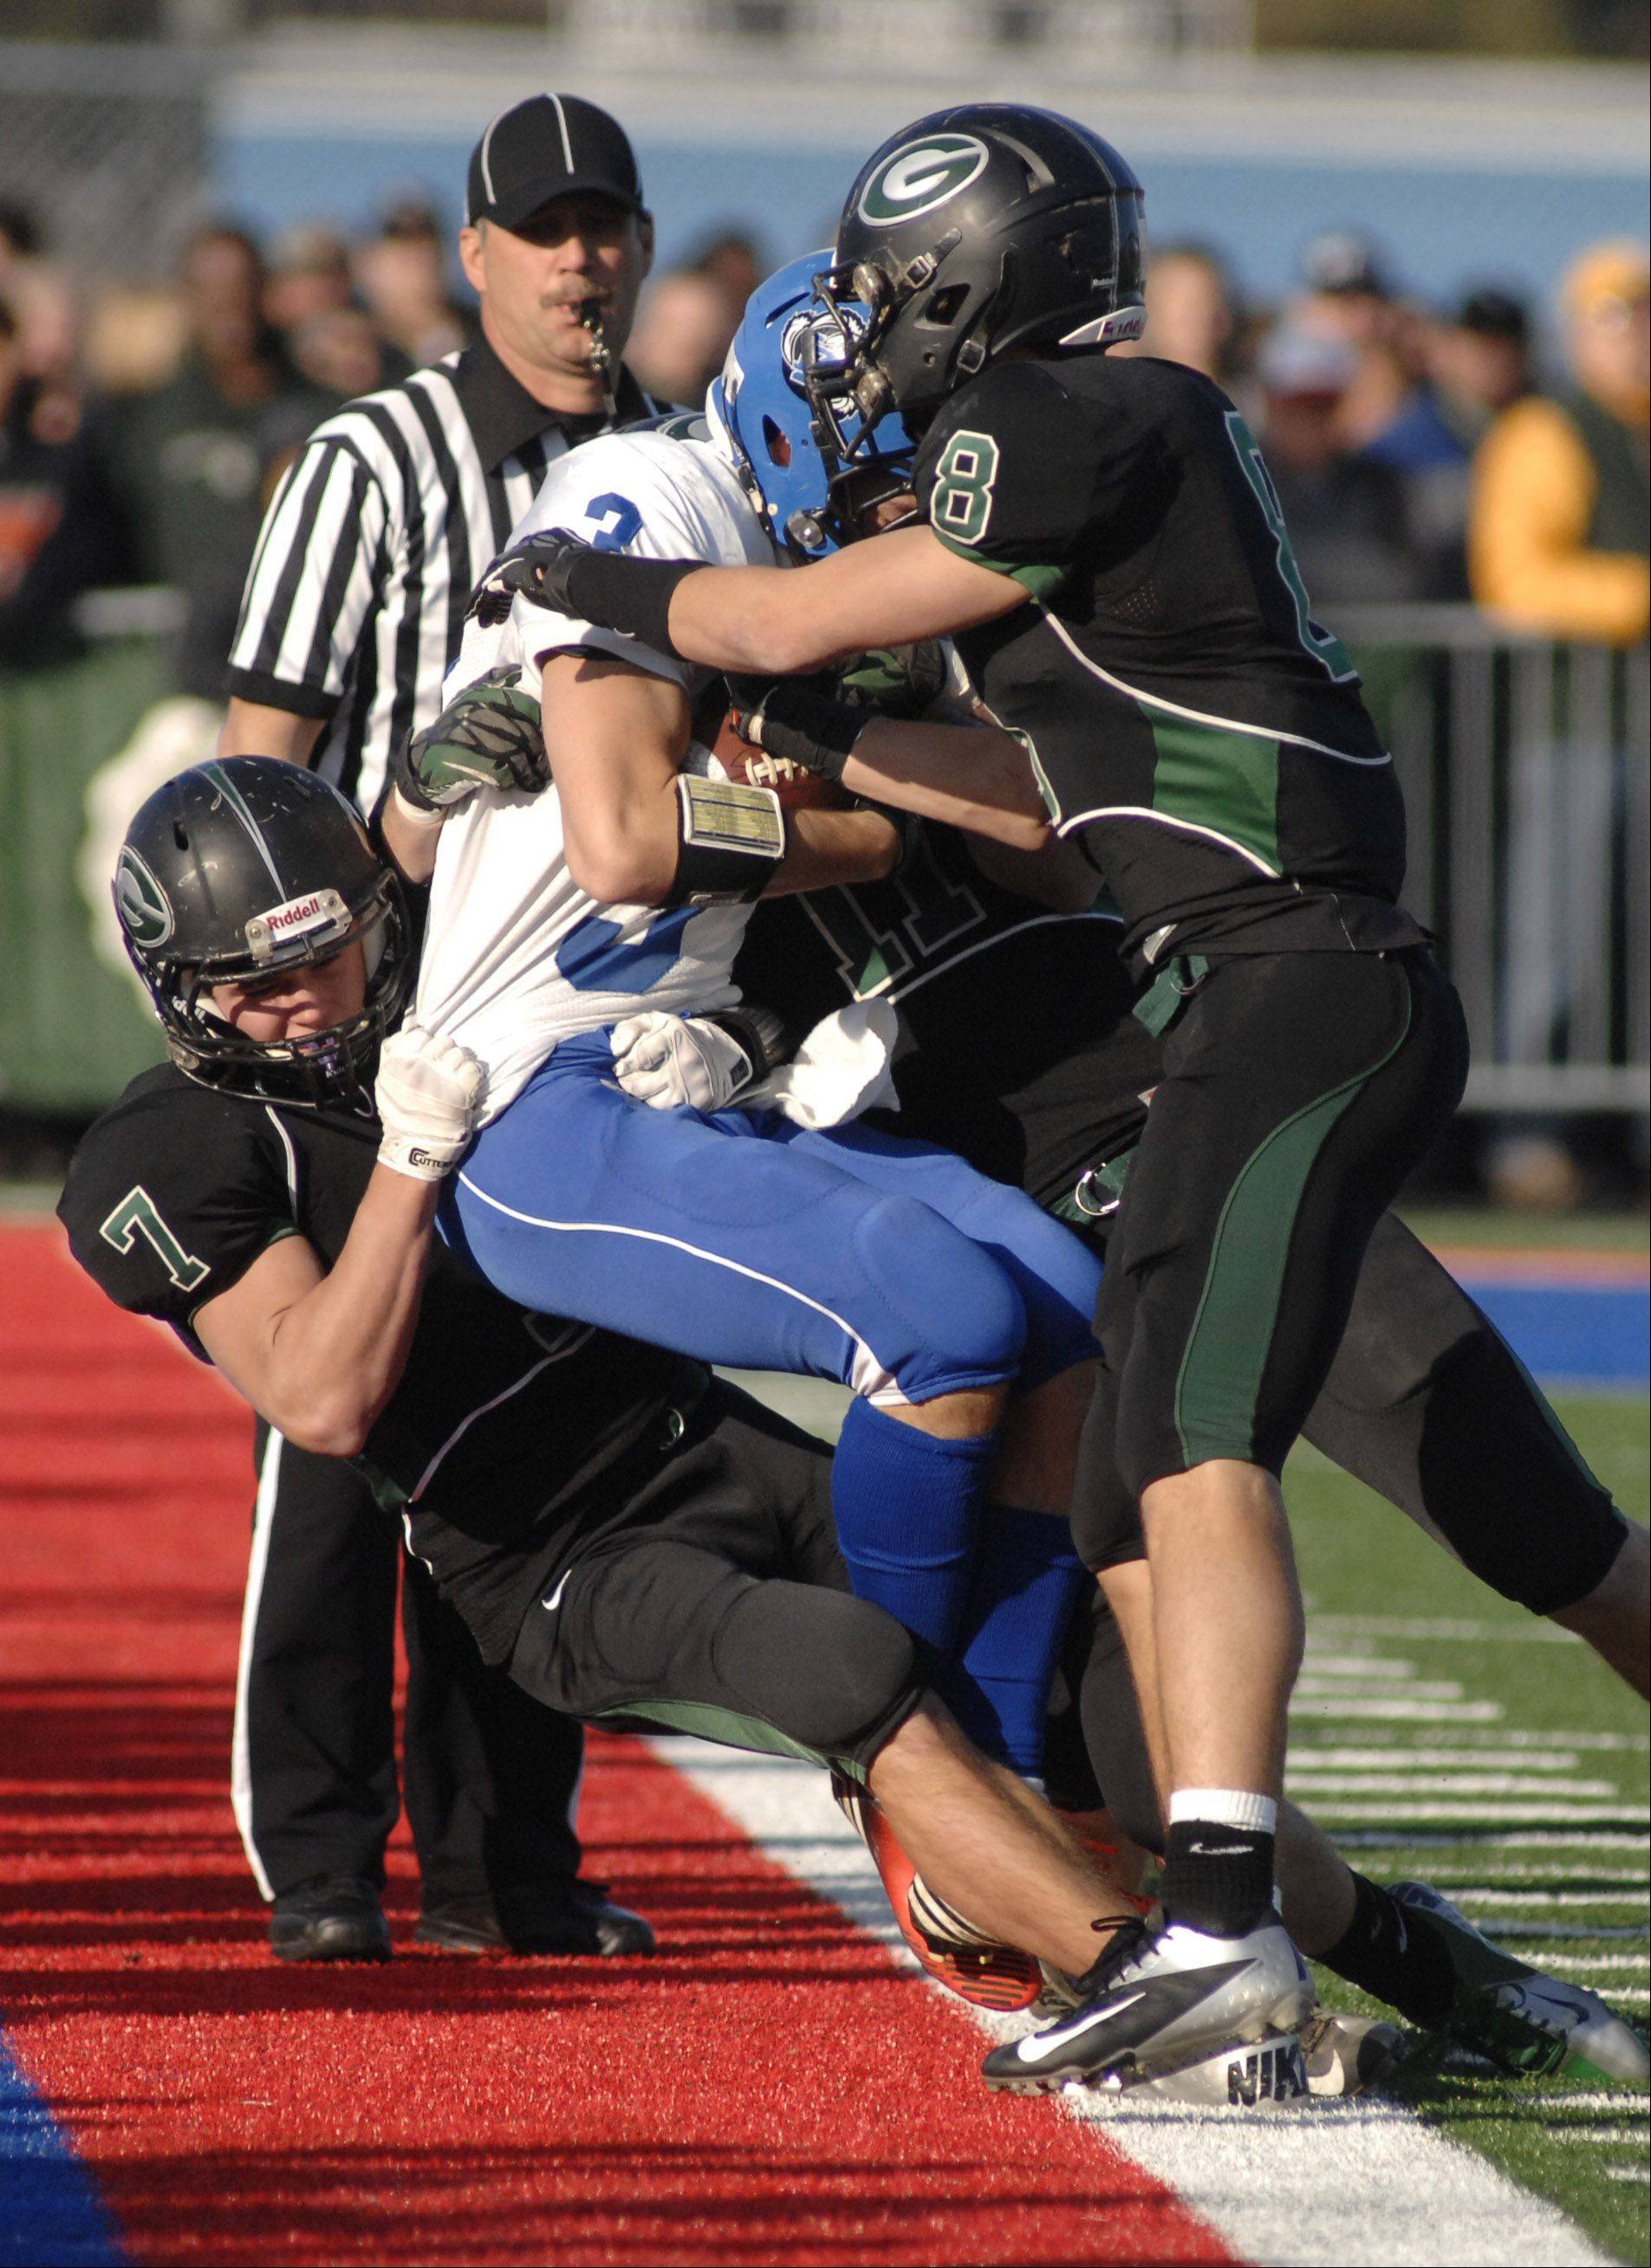 Glenbard West's Charlie Sweeney (7) gets help from Hayden Carlson (8) to knock down Lake Zurich's Steven Walcott in the second quarter on Saturday, Nov. 17.